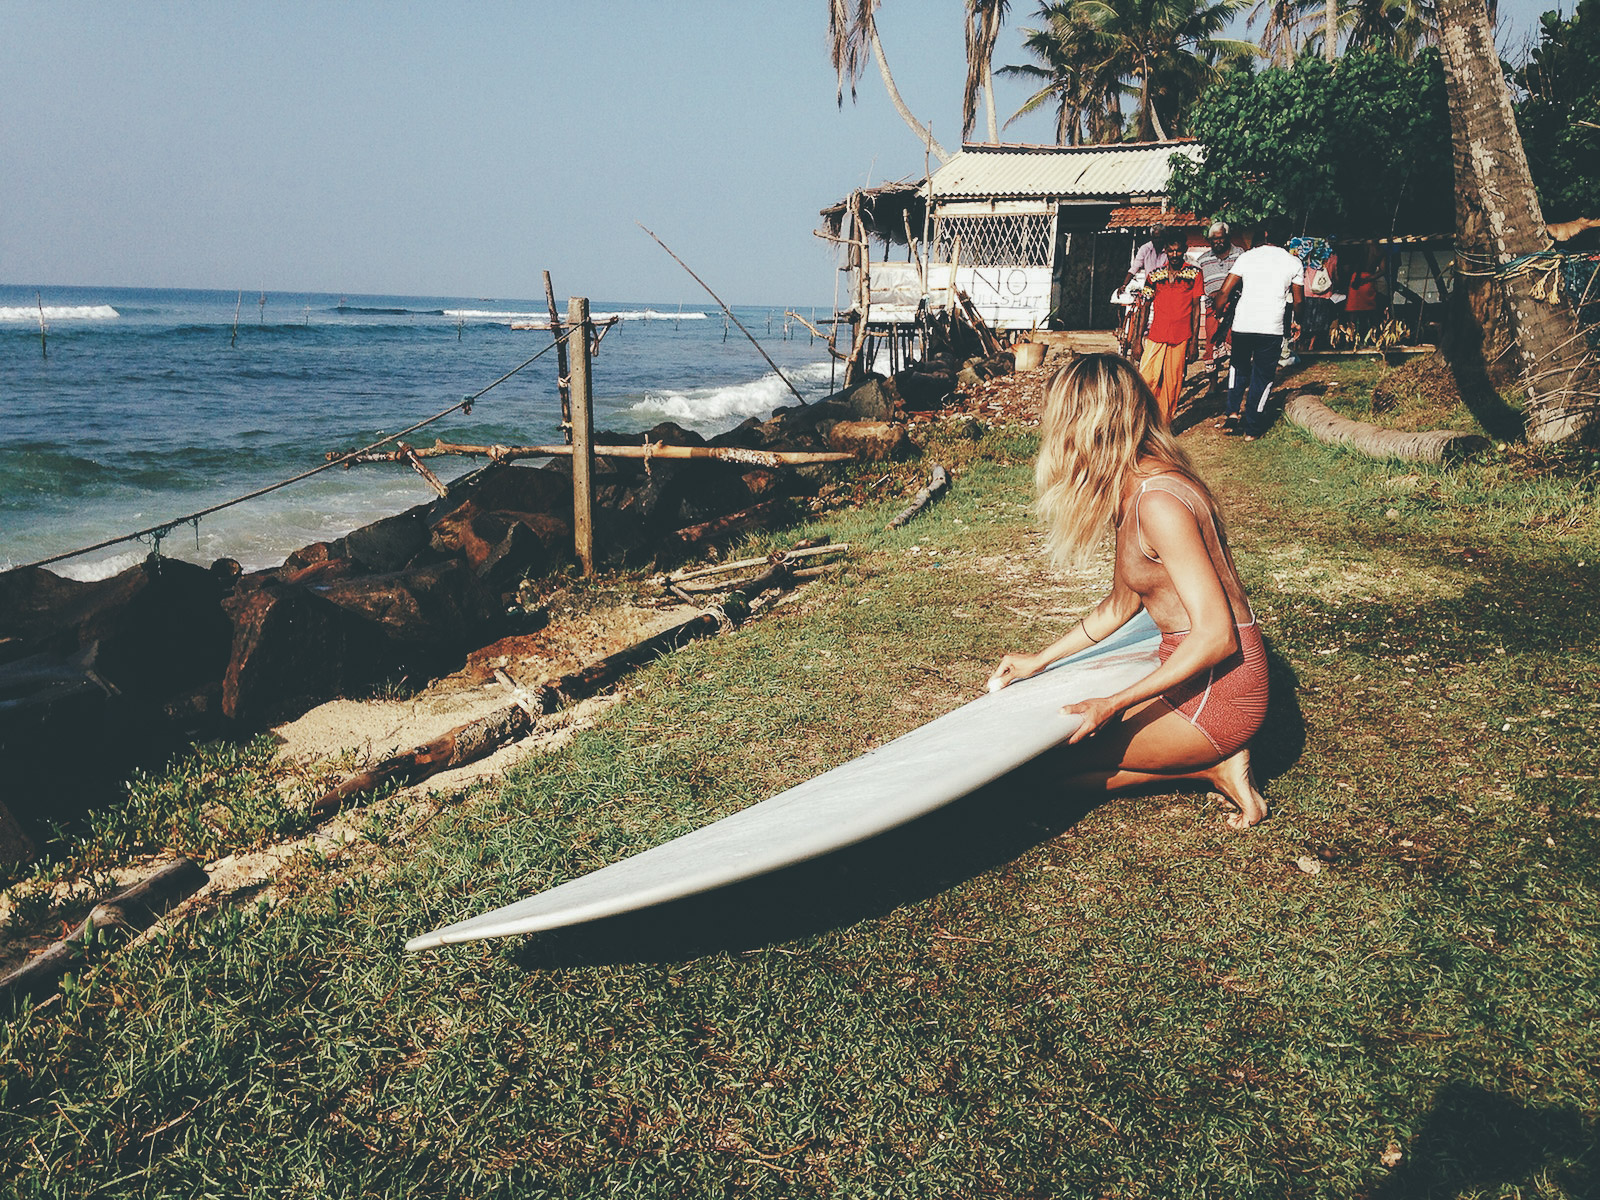 Sunshinestories-surf-travel-blog-Betsy 2